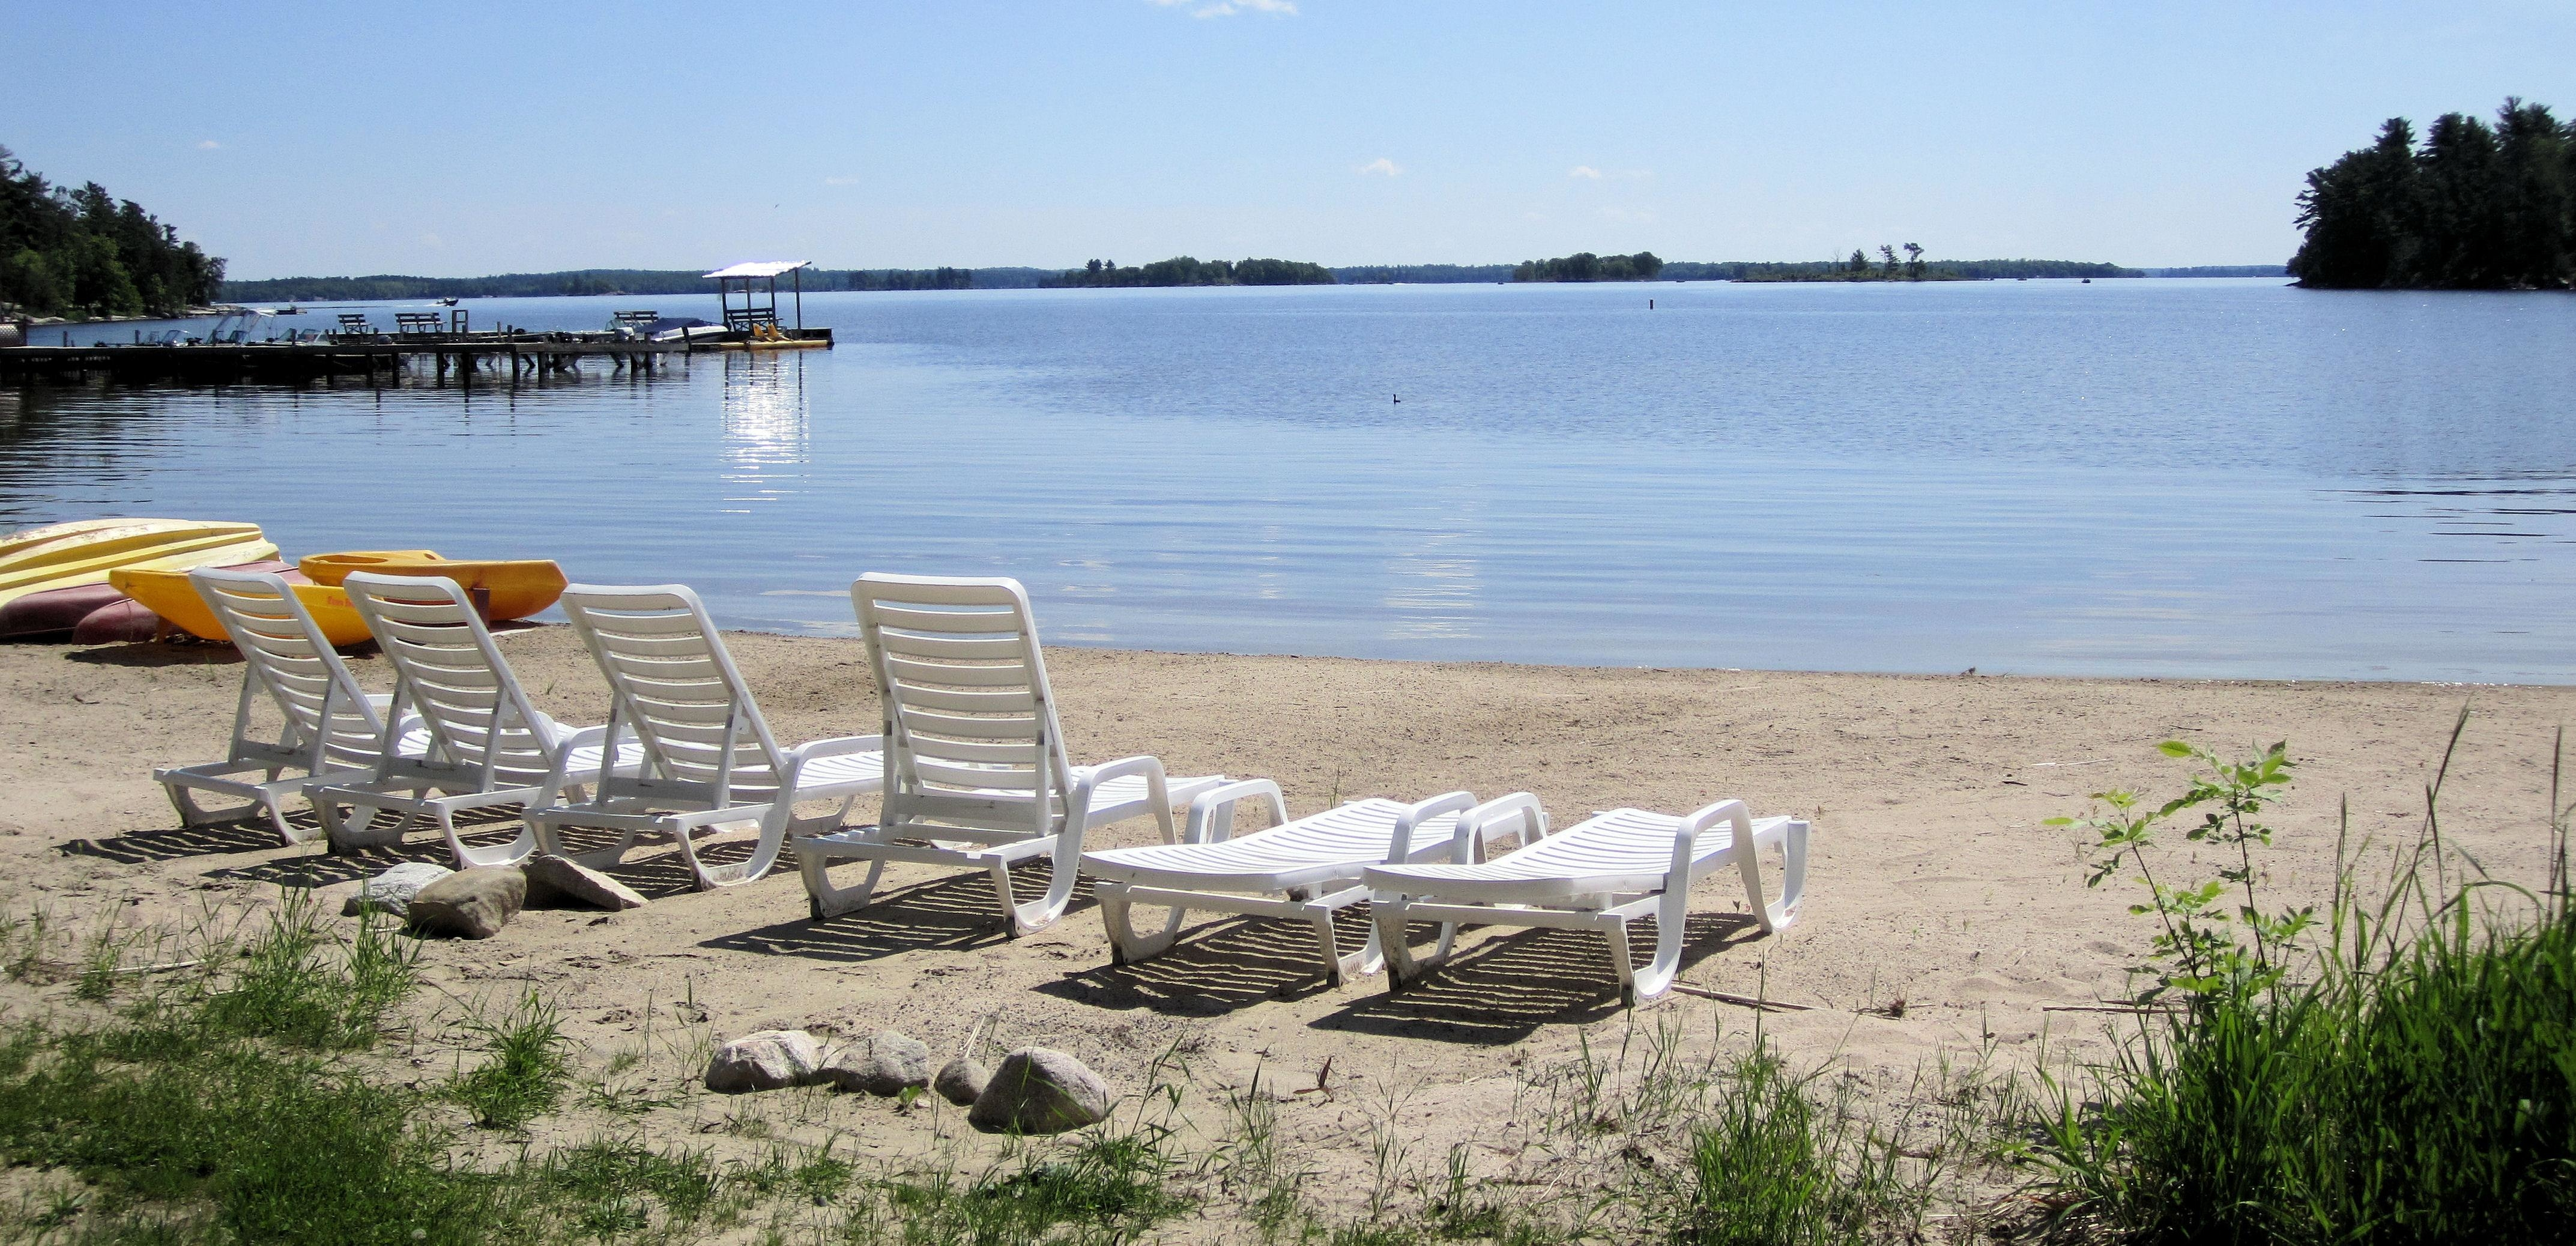 Moosehorn resort 10434 waltz rd kabetogama mn chalet for Wisconsin fishing resorts with boat rentals